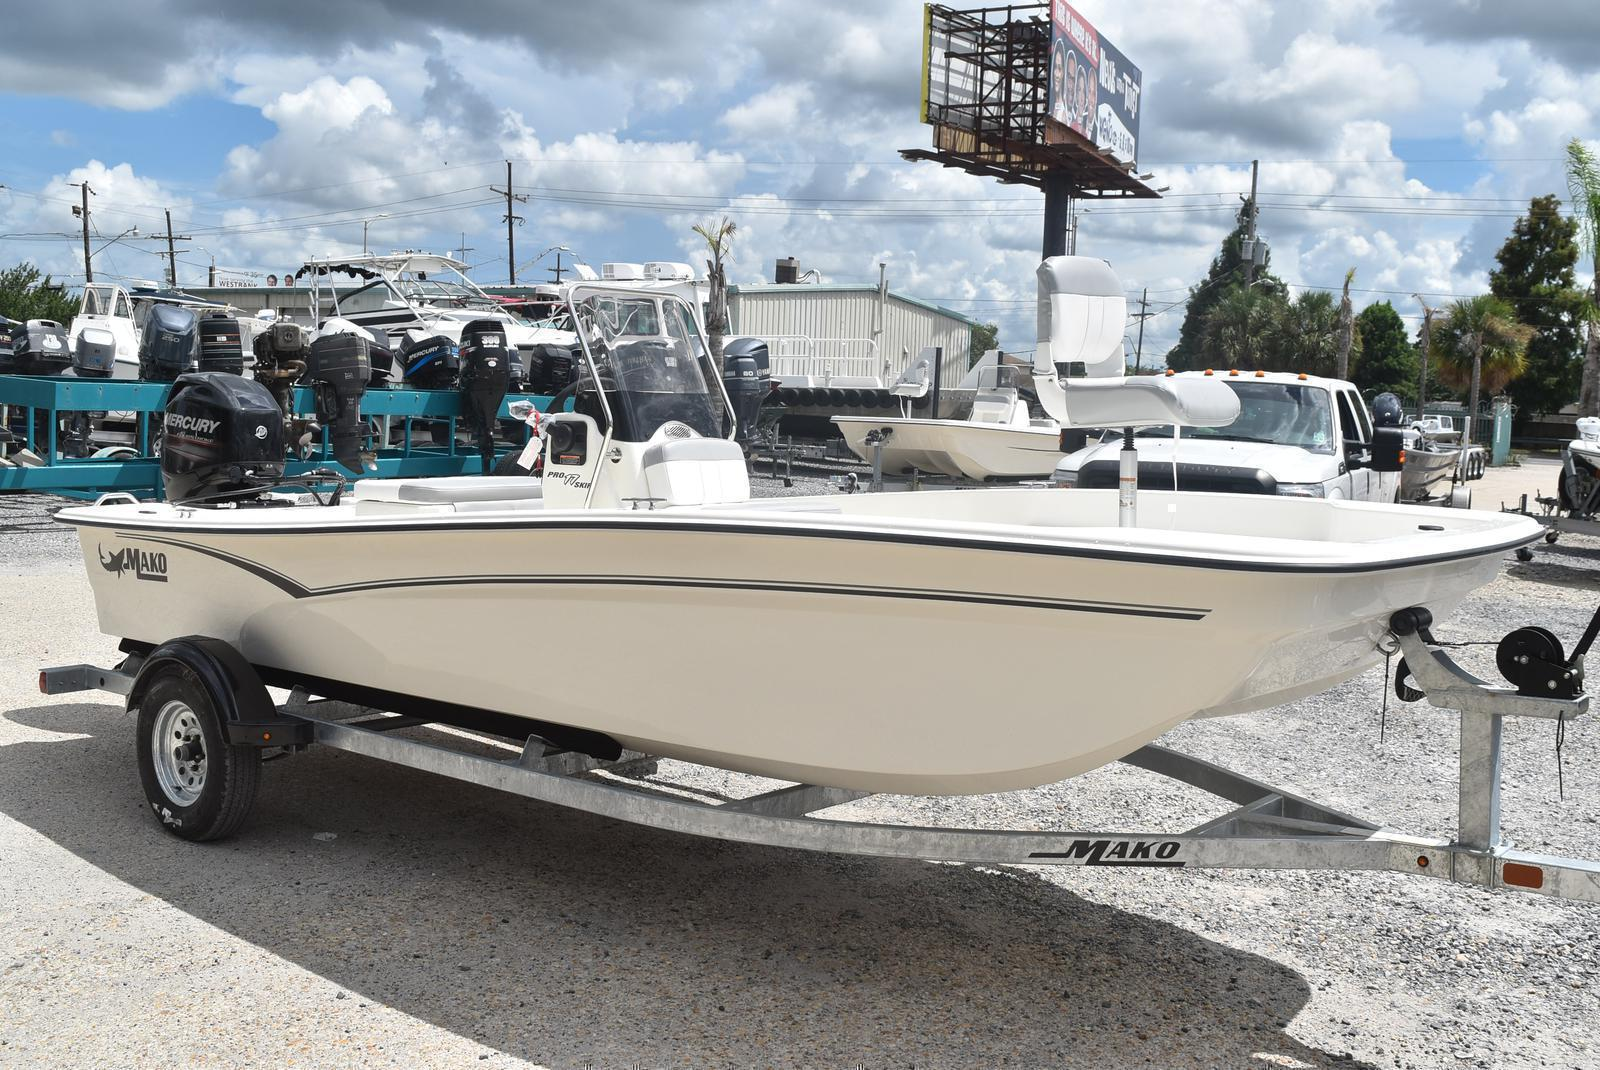 2020 Mako boat for sale, model of the boat is Pro Skiff 17, 75 ELPT & Image # 660 of 702